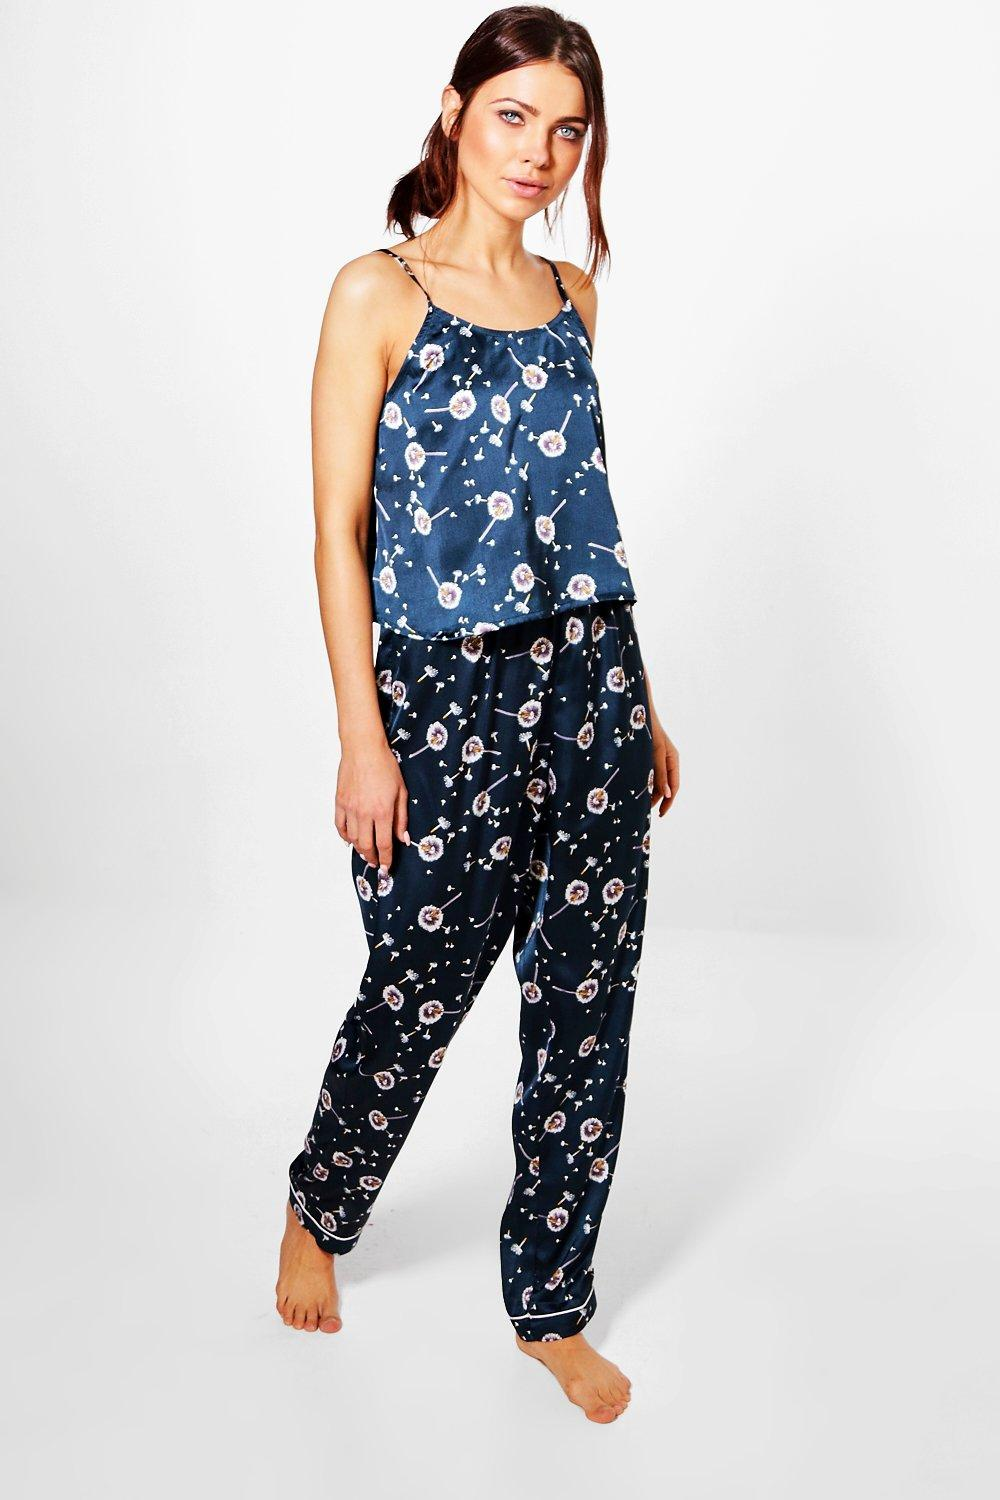 Skye Satin Dandelion Print Vest And Trouser PJ Set